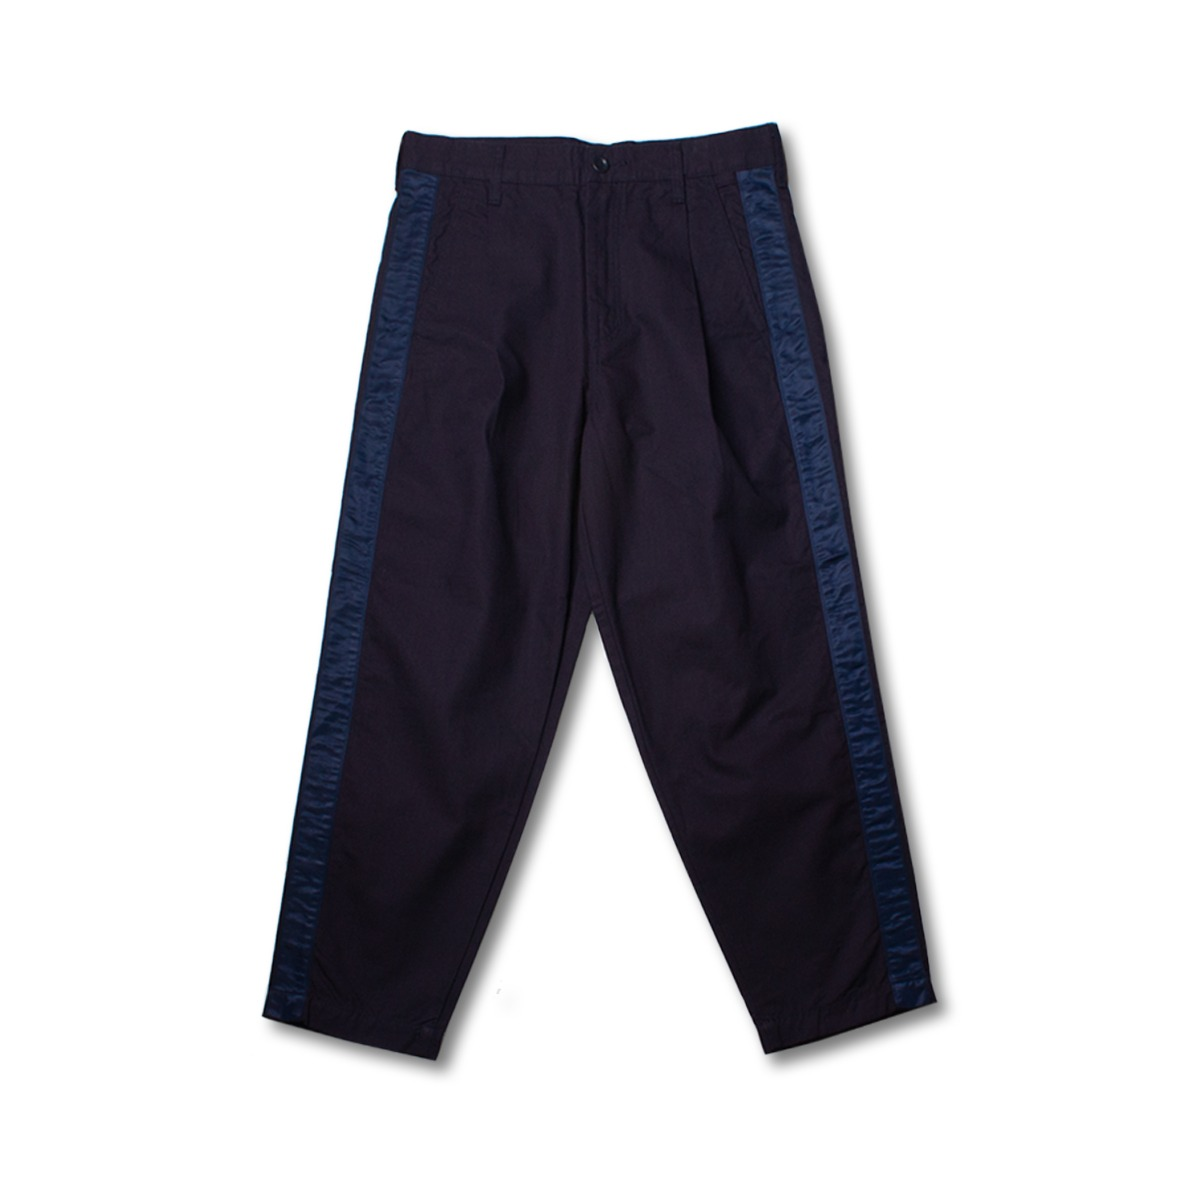 [FDMTL] SIDE TAPE WIDE CROPPED PANTS 'NAVY'